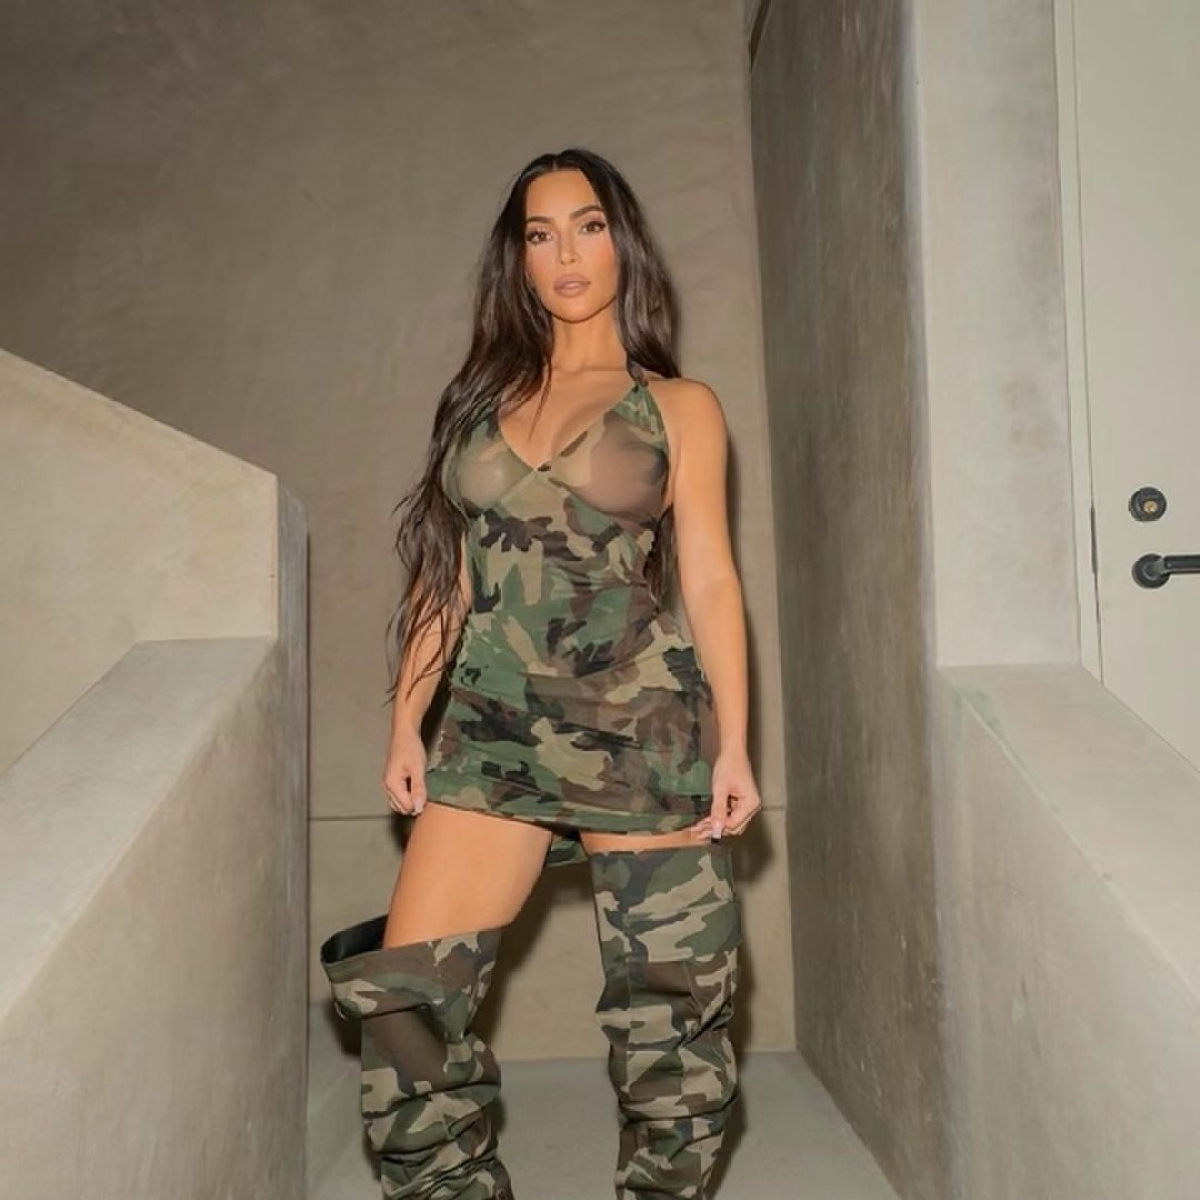 'No overtime pay, no meal, no rest breaks': Kim Kardashian reacts after ex-staff members sue her for violating labour laws